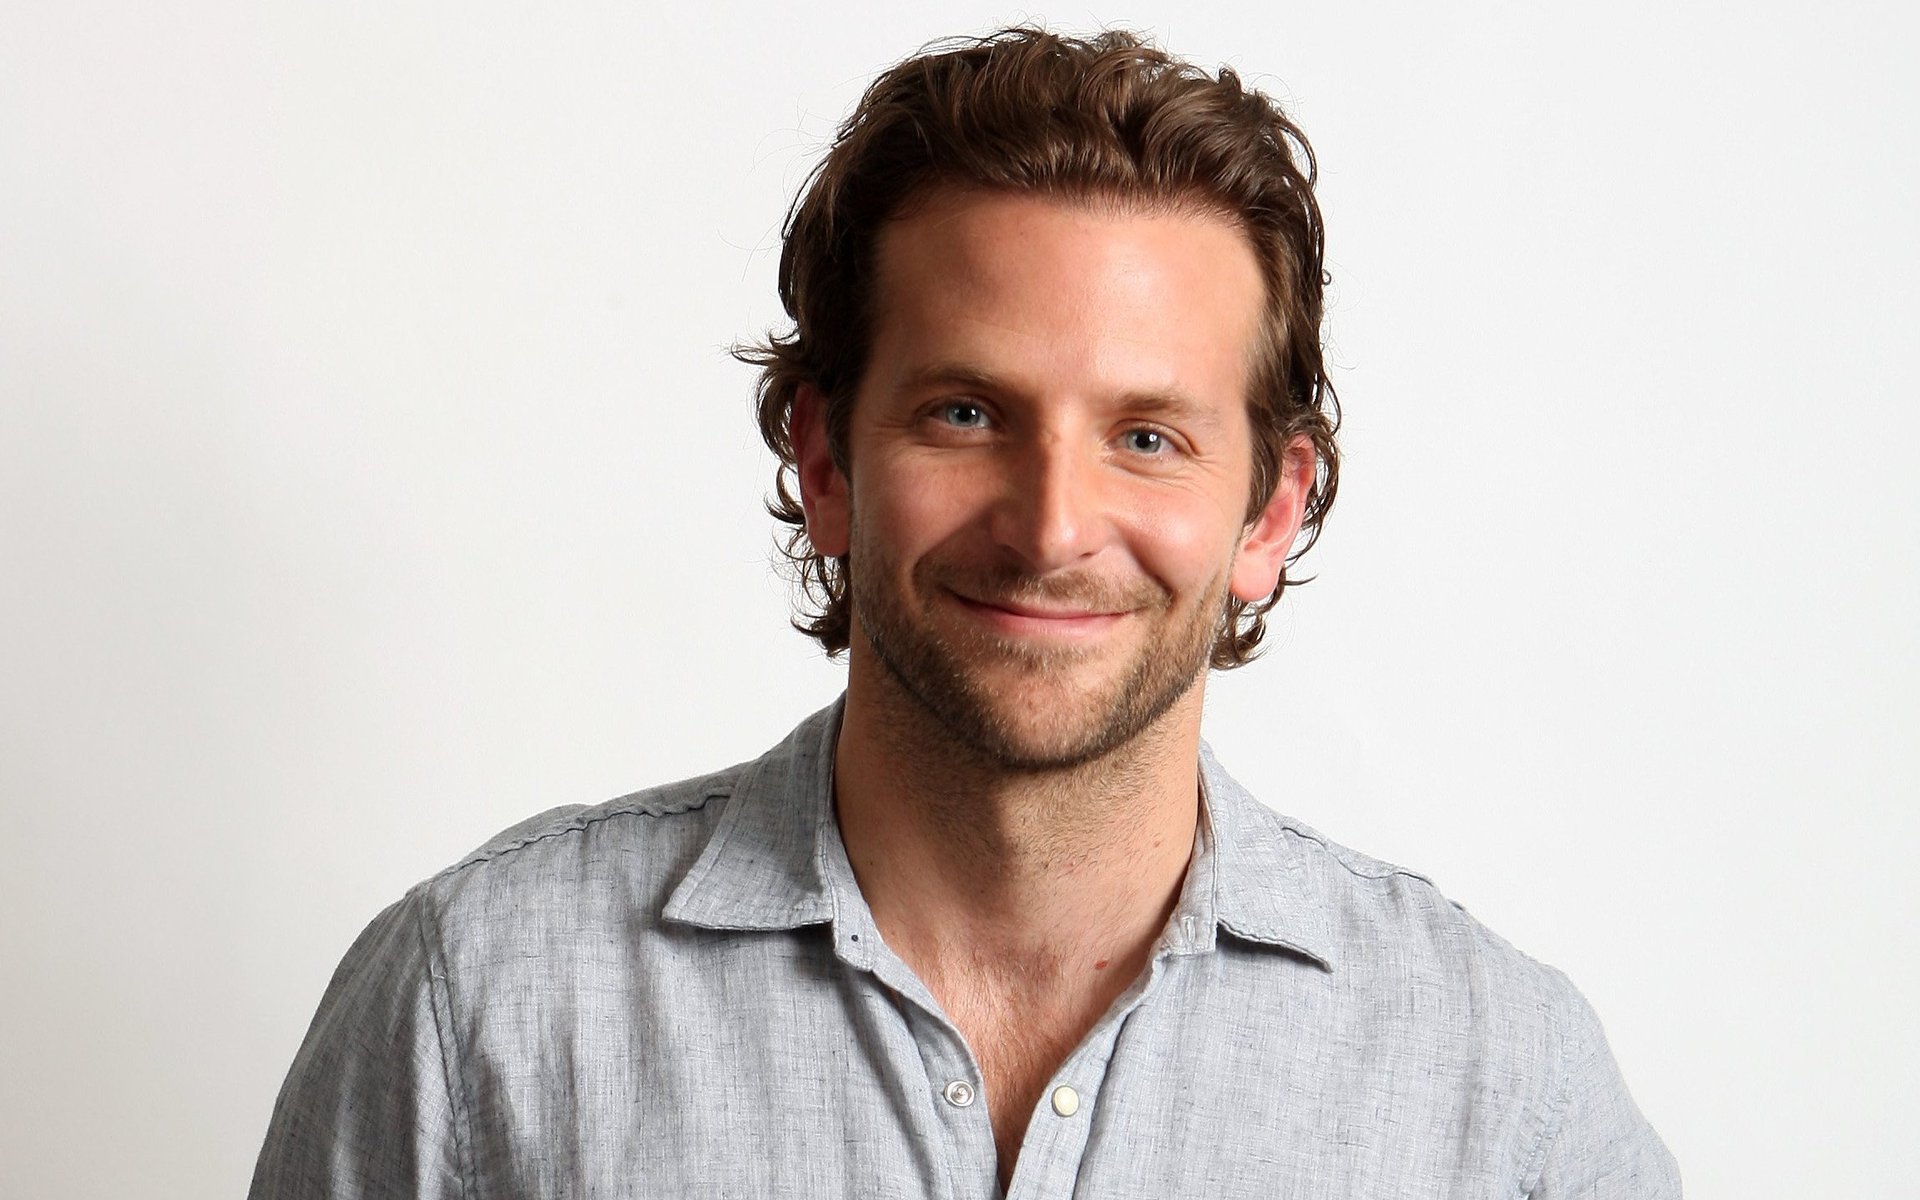 bradley cooper computer wallpapers desktop backgrounds